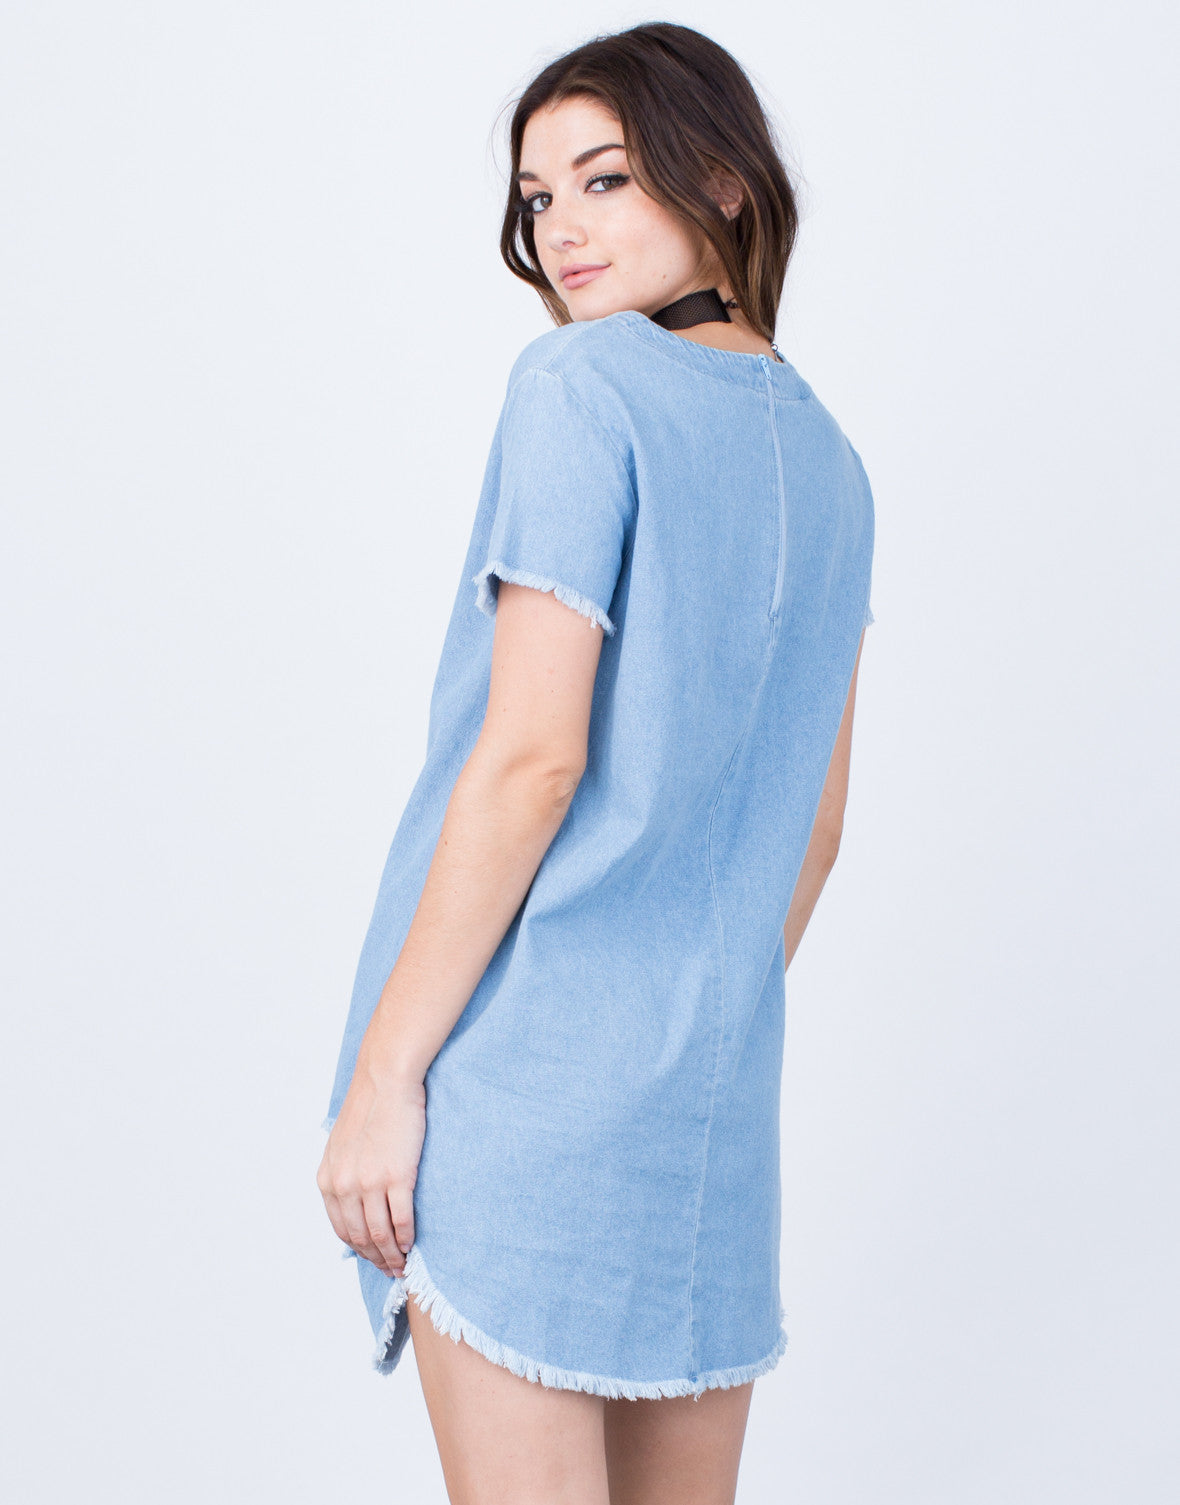 Back View of Destroyed Denim Dress